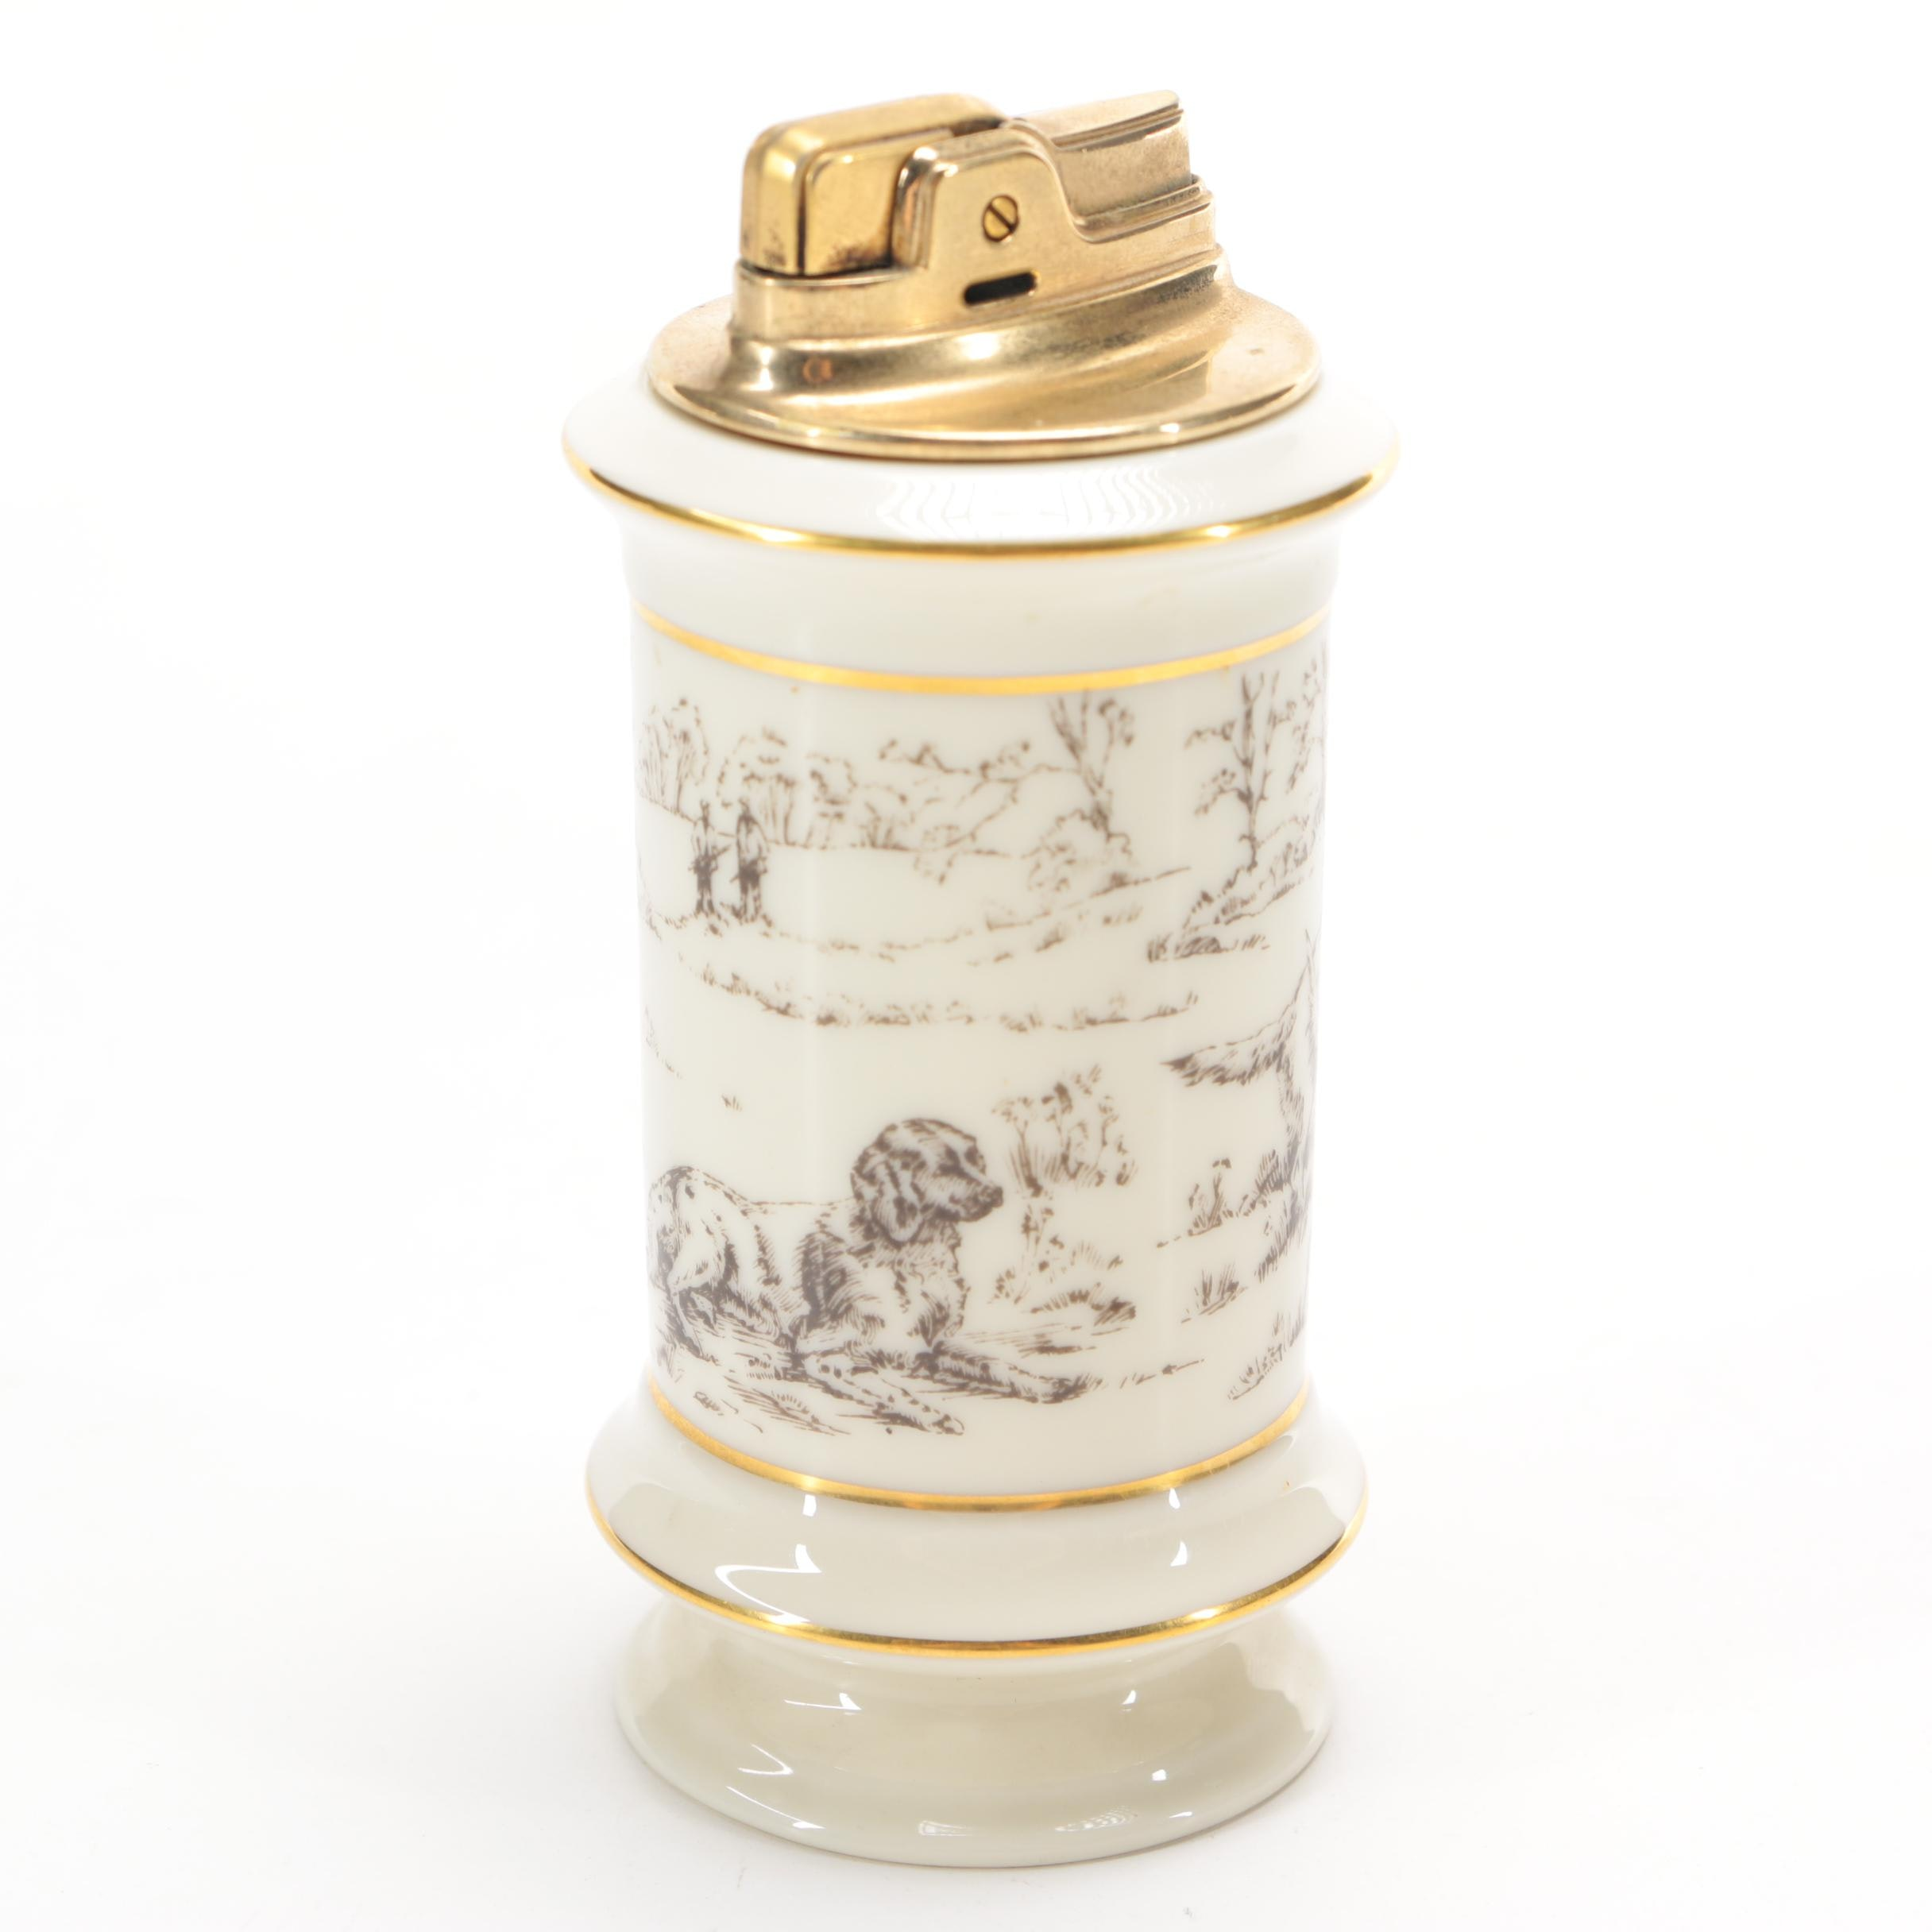 Lenox Porcelain Lighter